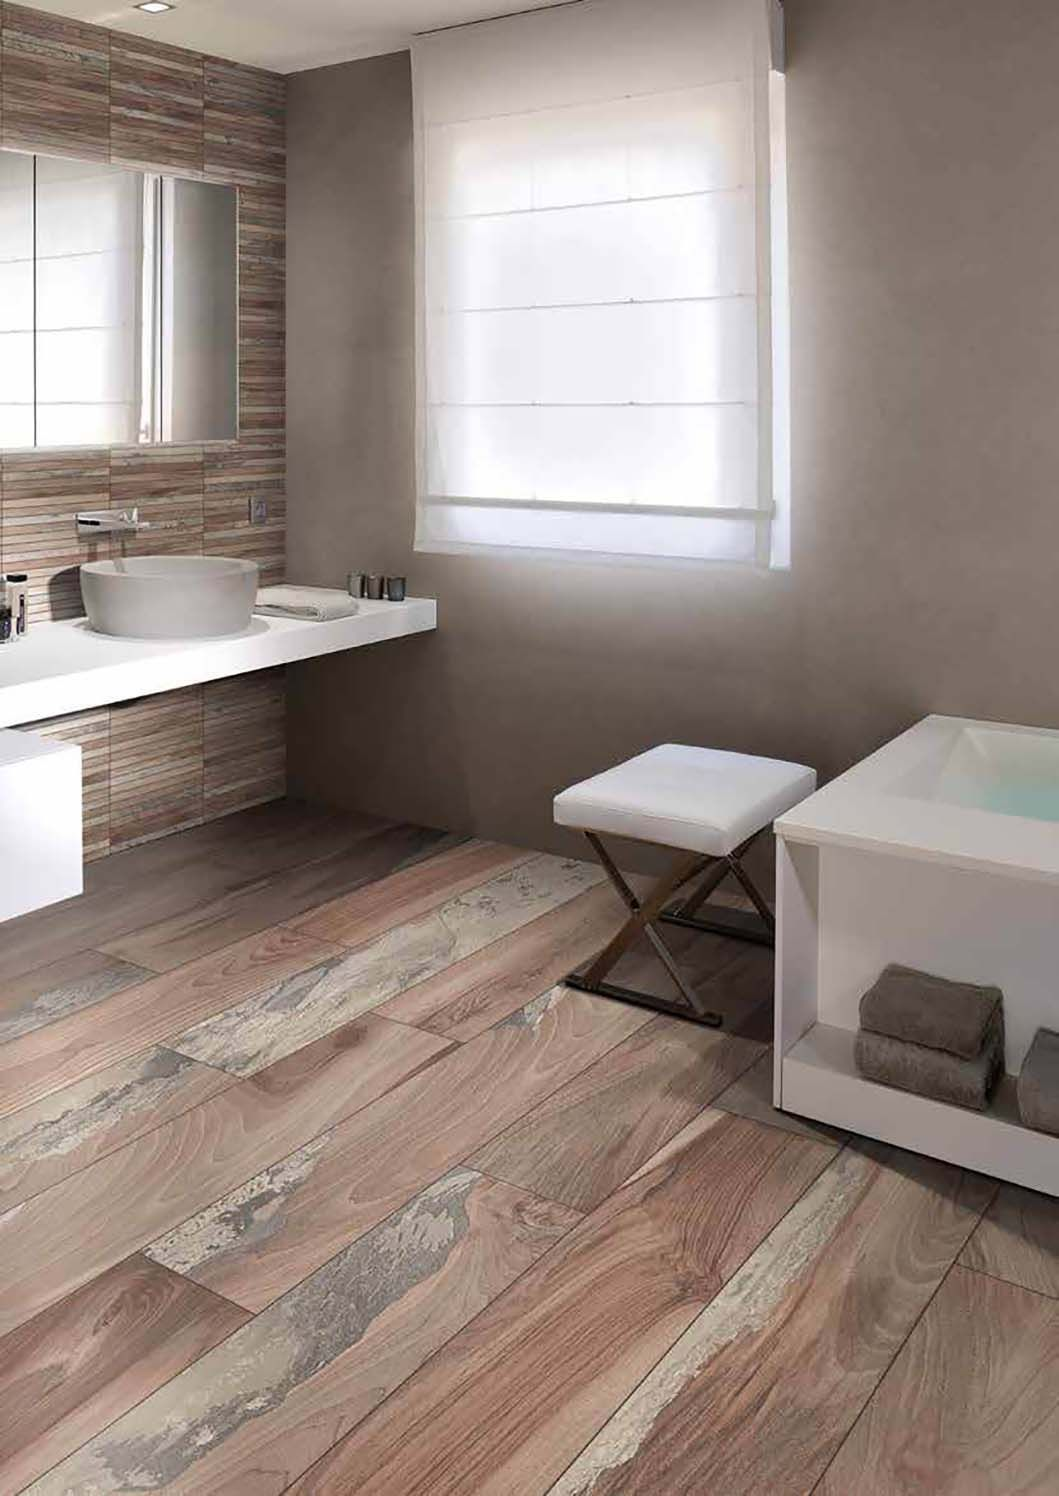 Vallelunga martis spectacular matte plank tile arley vallelunga martis spectacular matte plank tile arley wholesale dailygadgetfo Choice Image